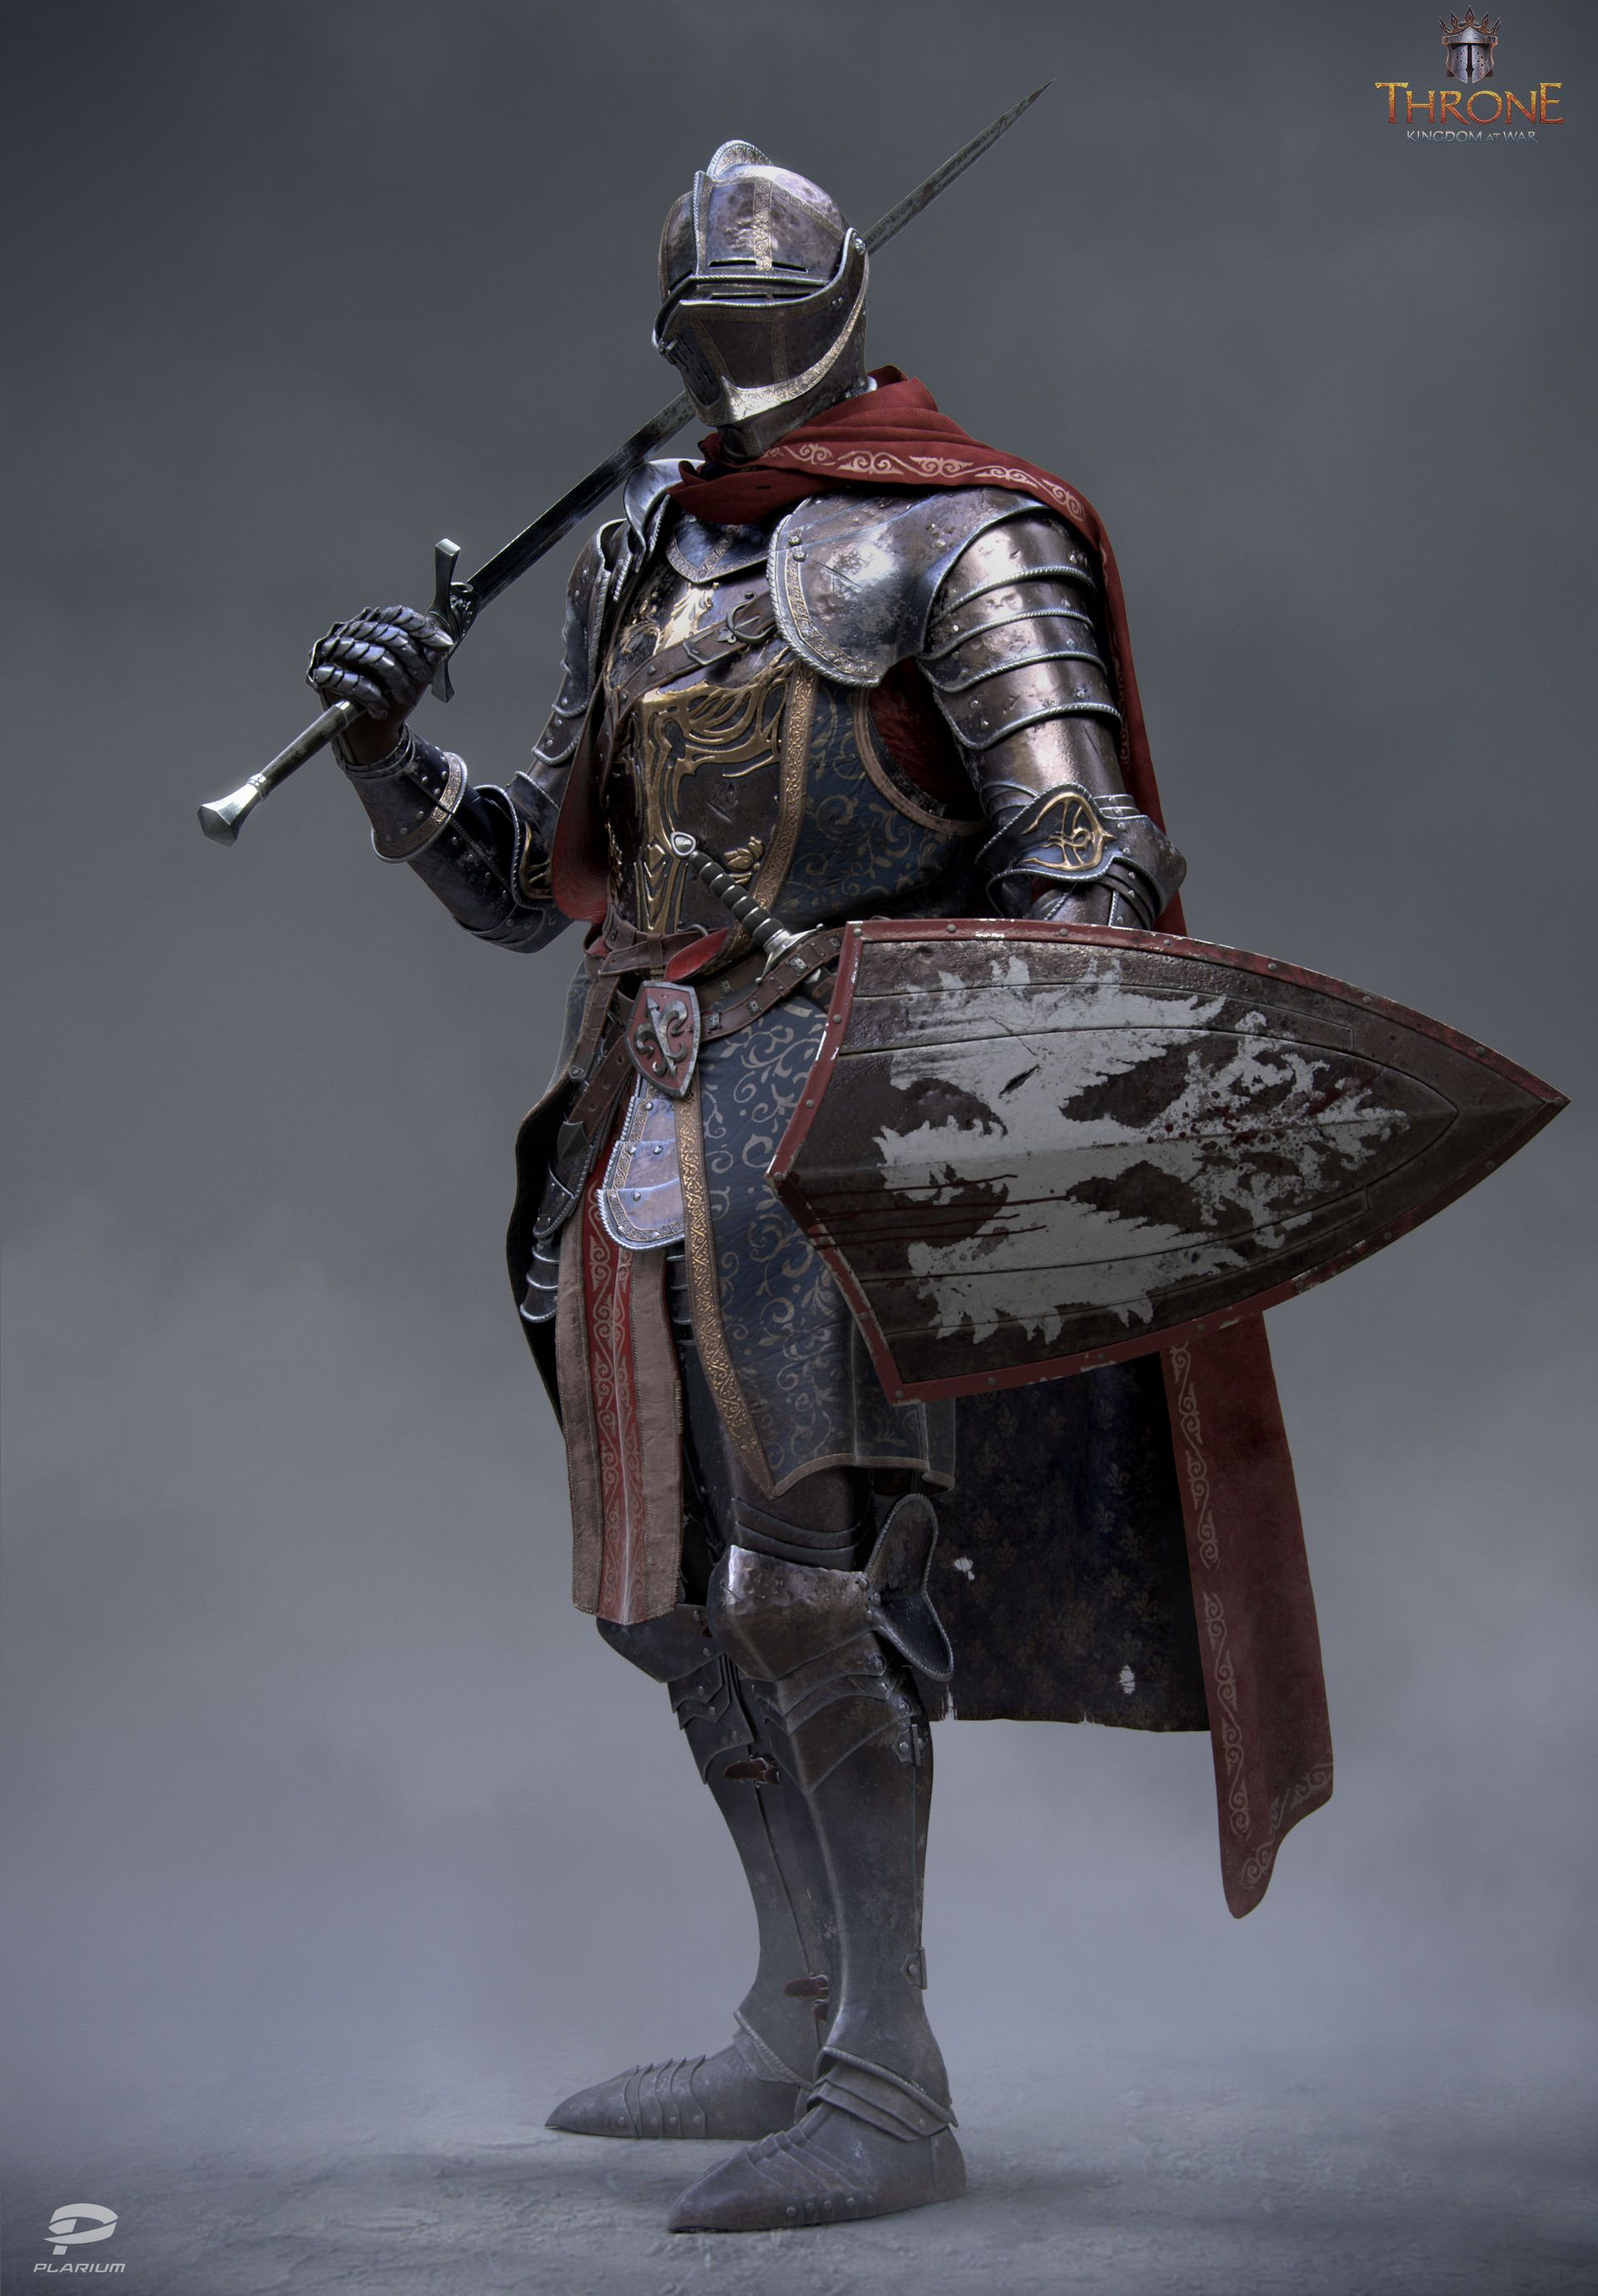 Dnd characters in 2019 | Fashion | Fantasy armor, Knight ...